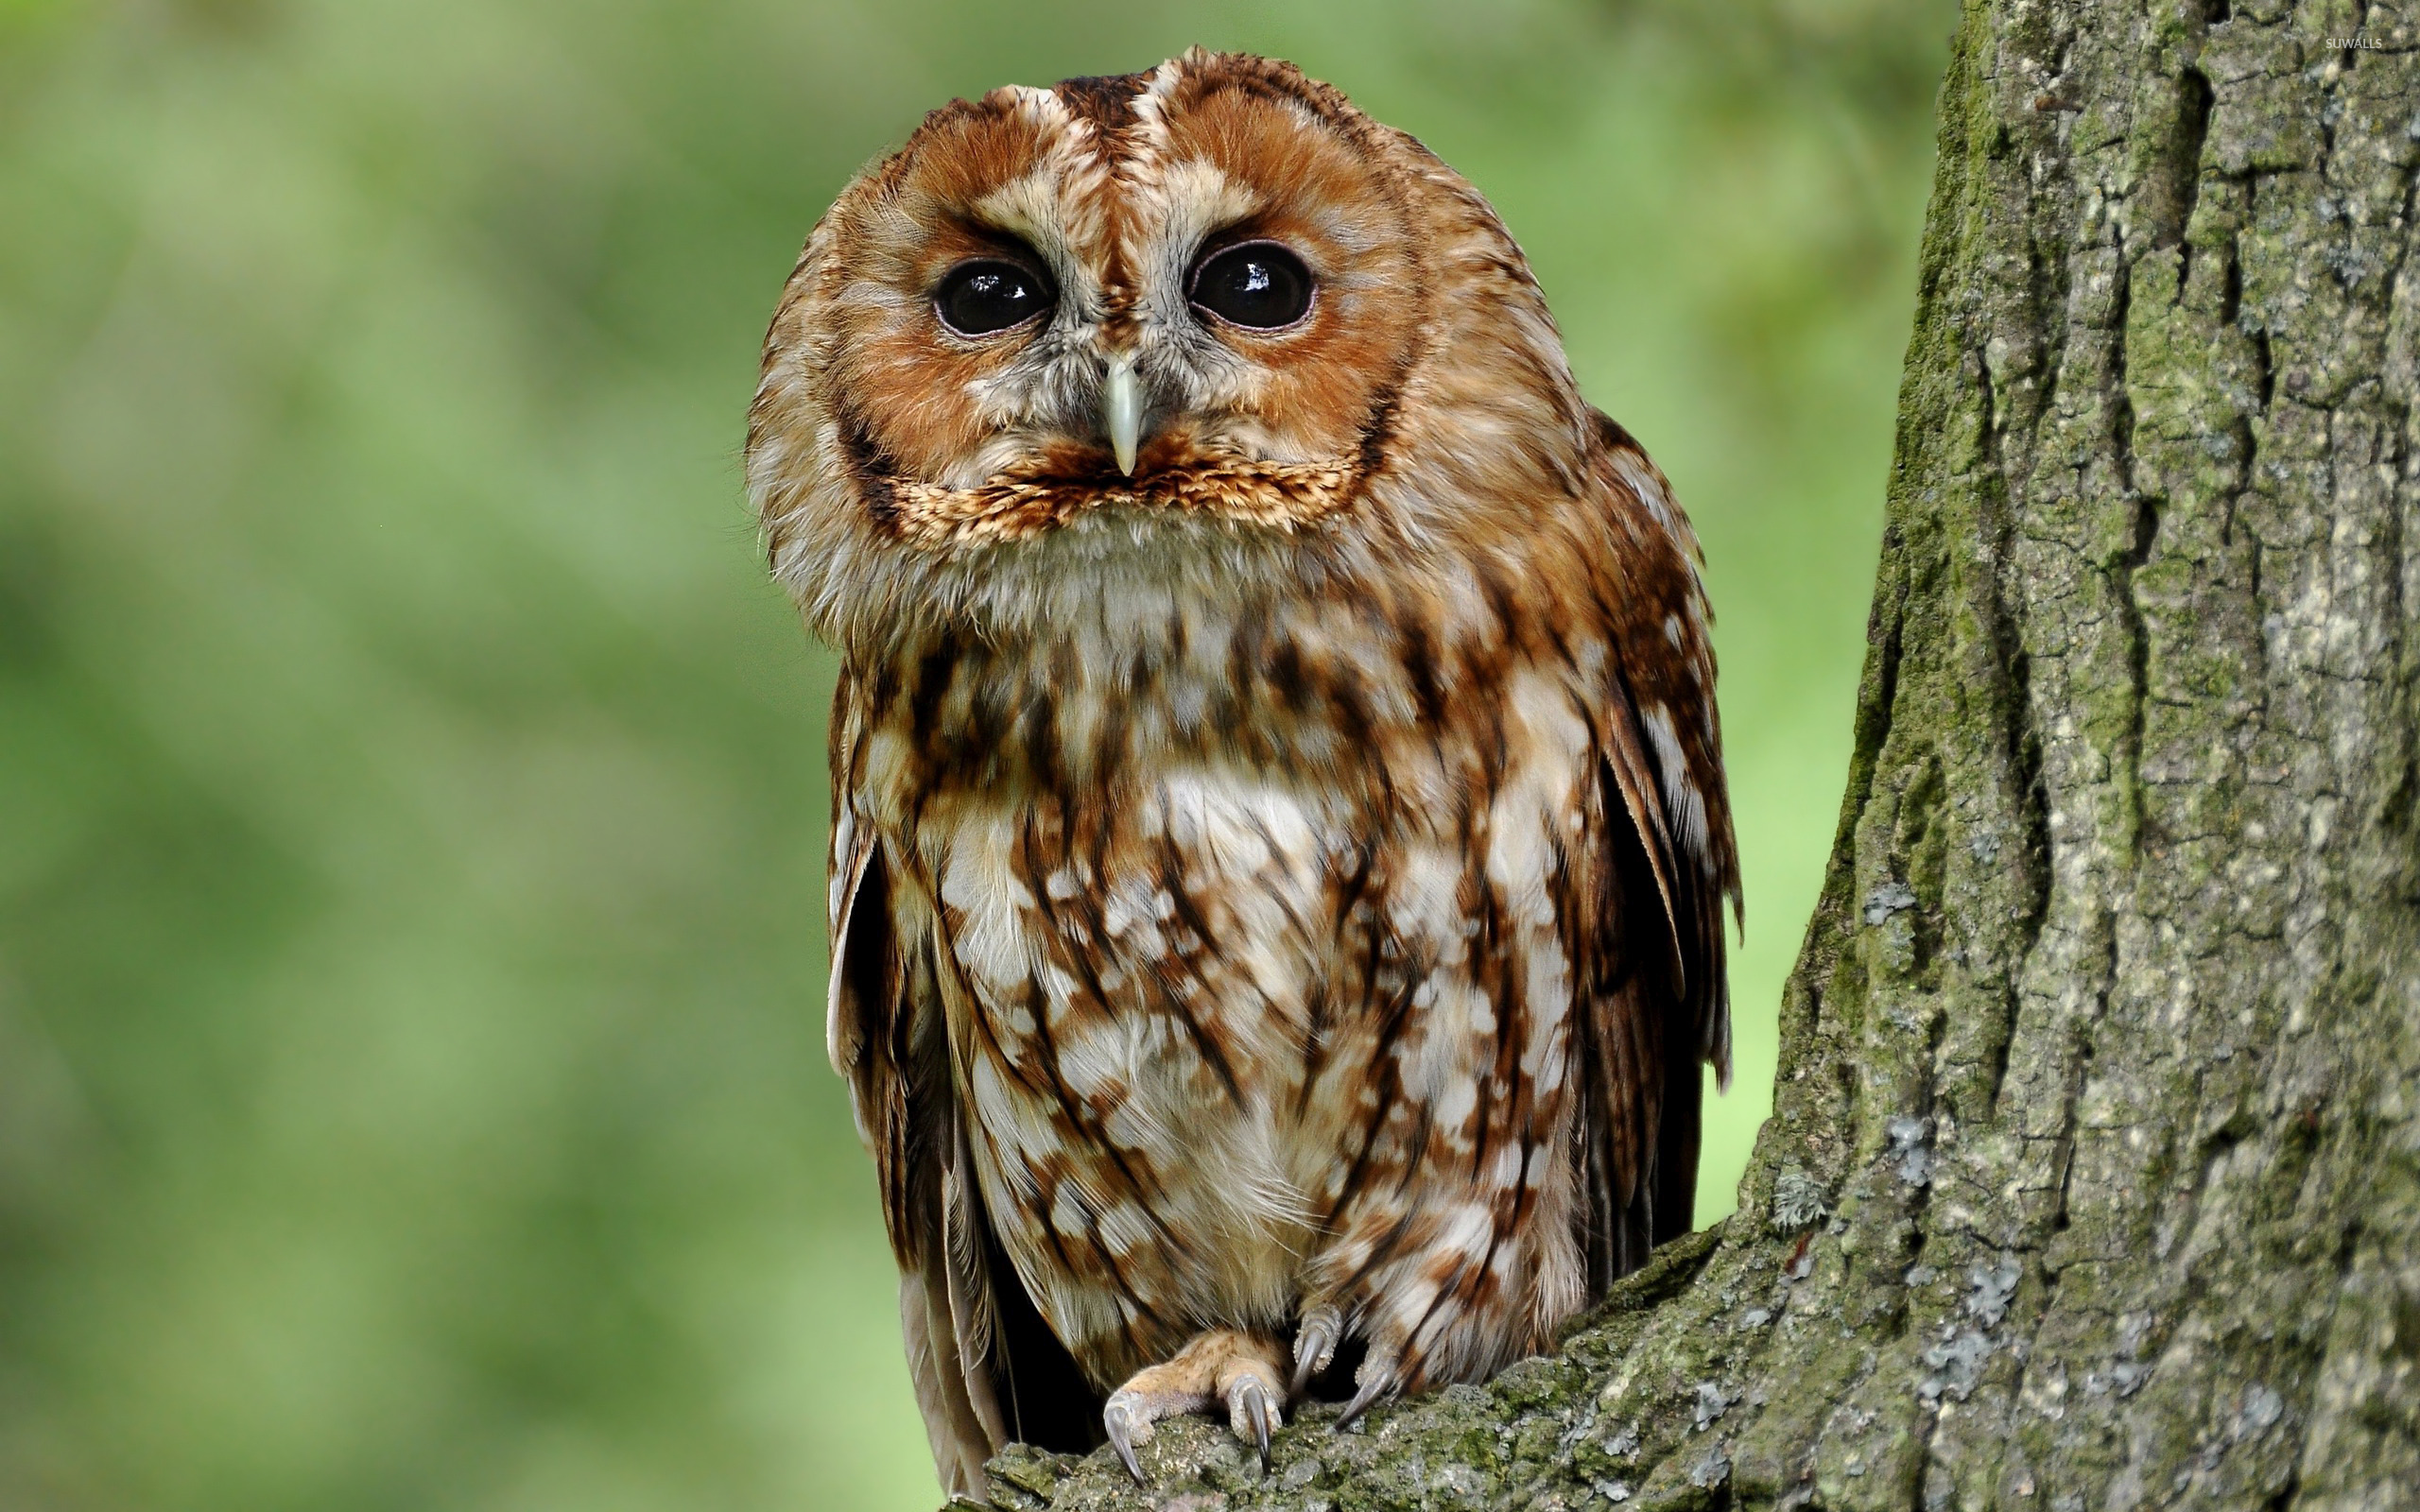 Cute Minimalistic Wallpapers Tawny Owl In A Tree Wallpaper Animal Wallpapers 48362